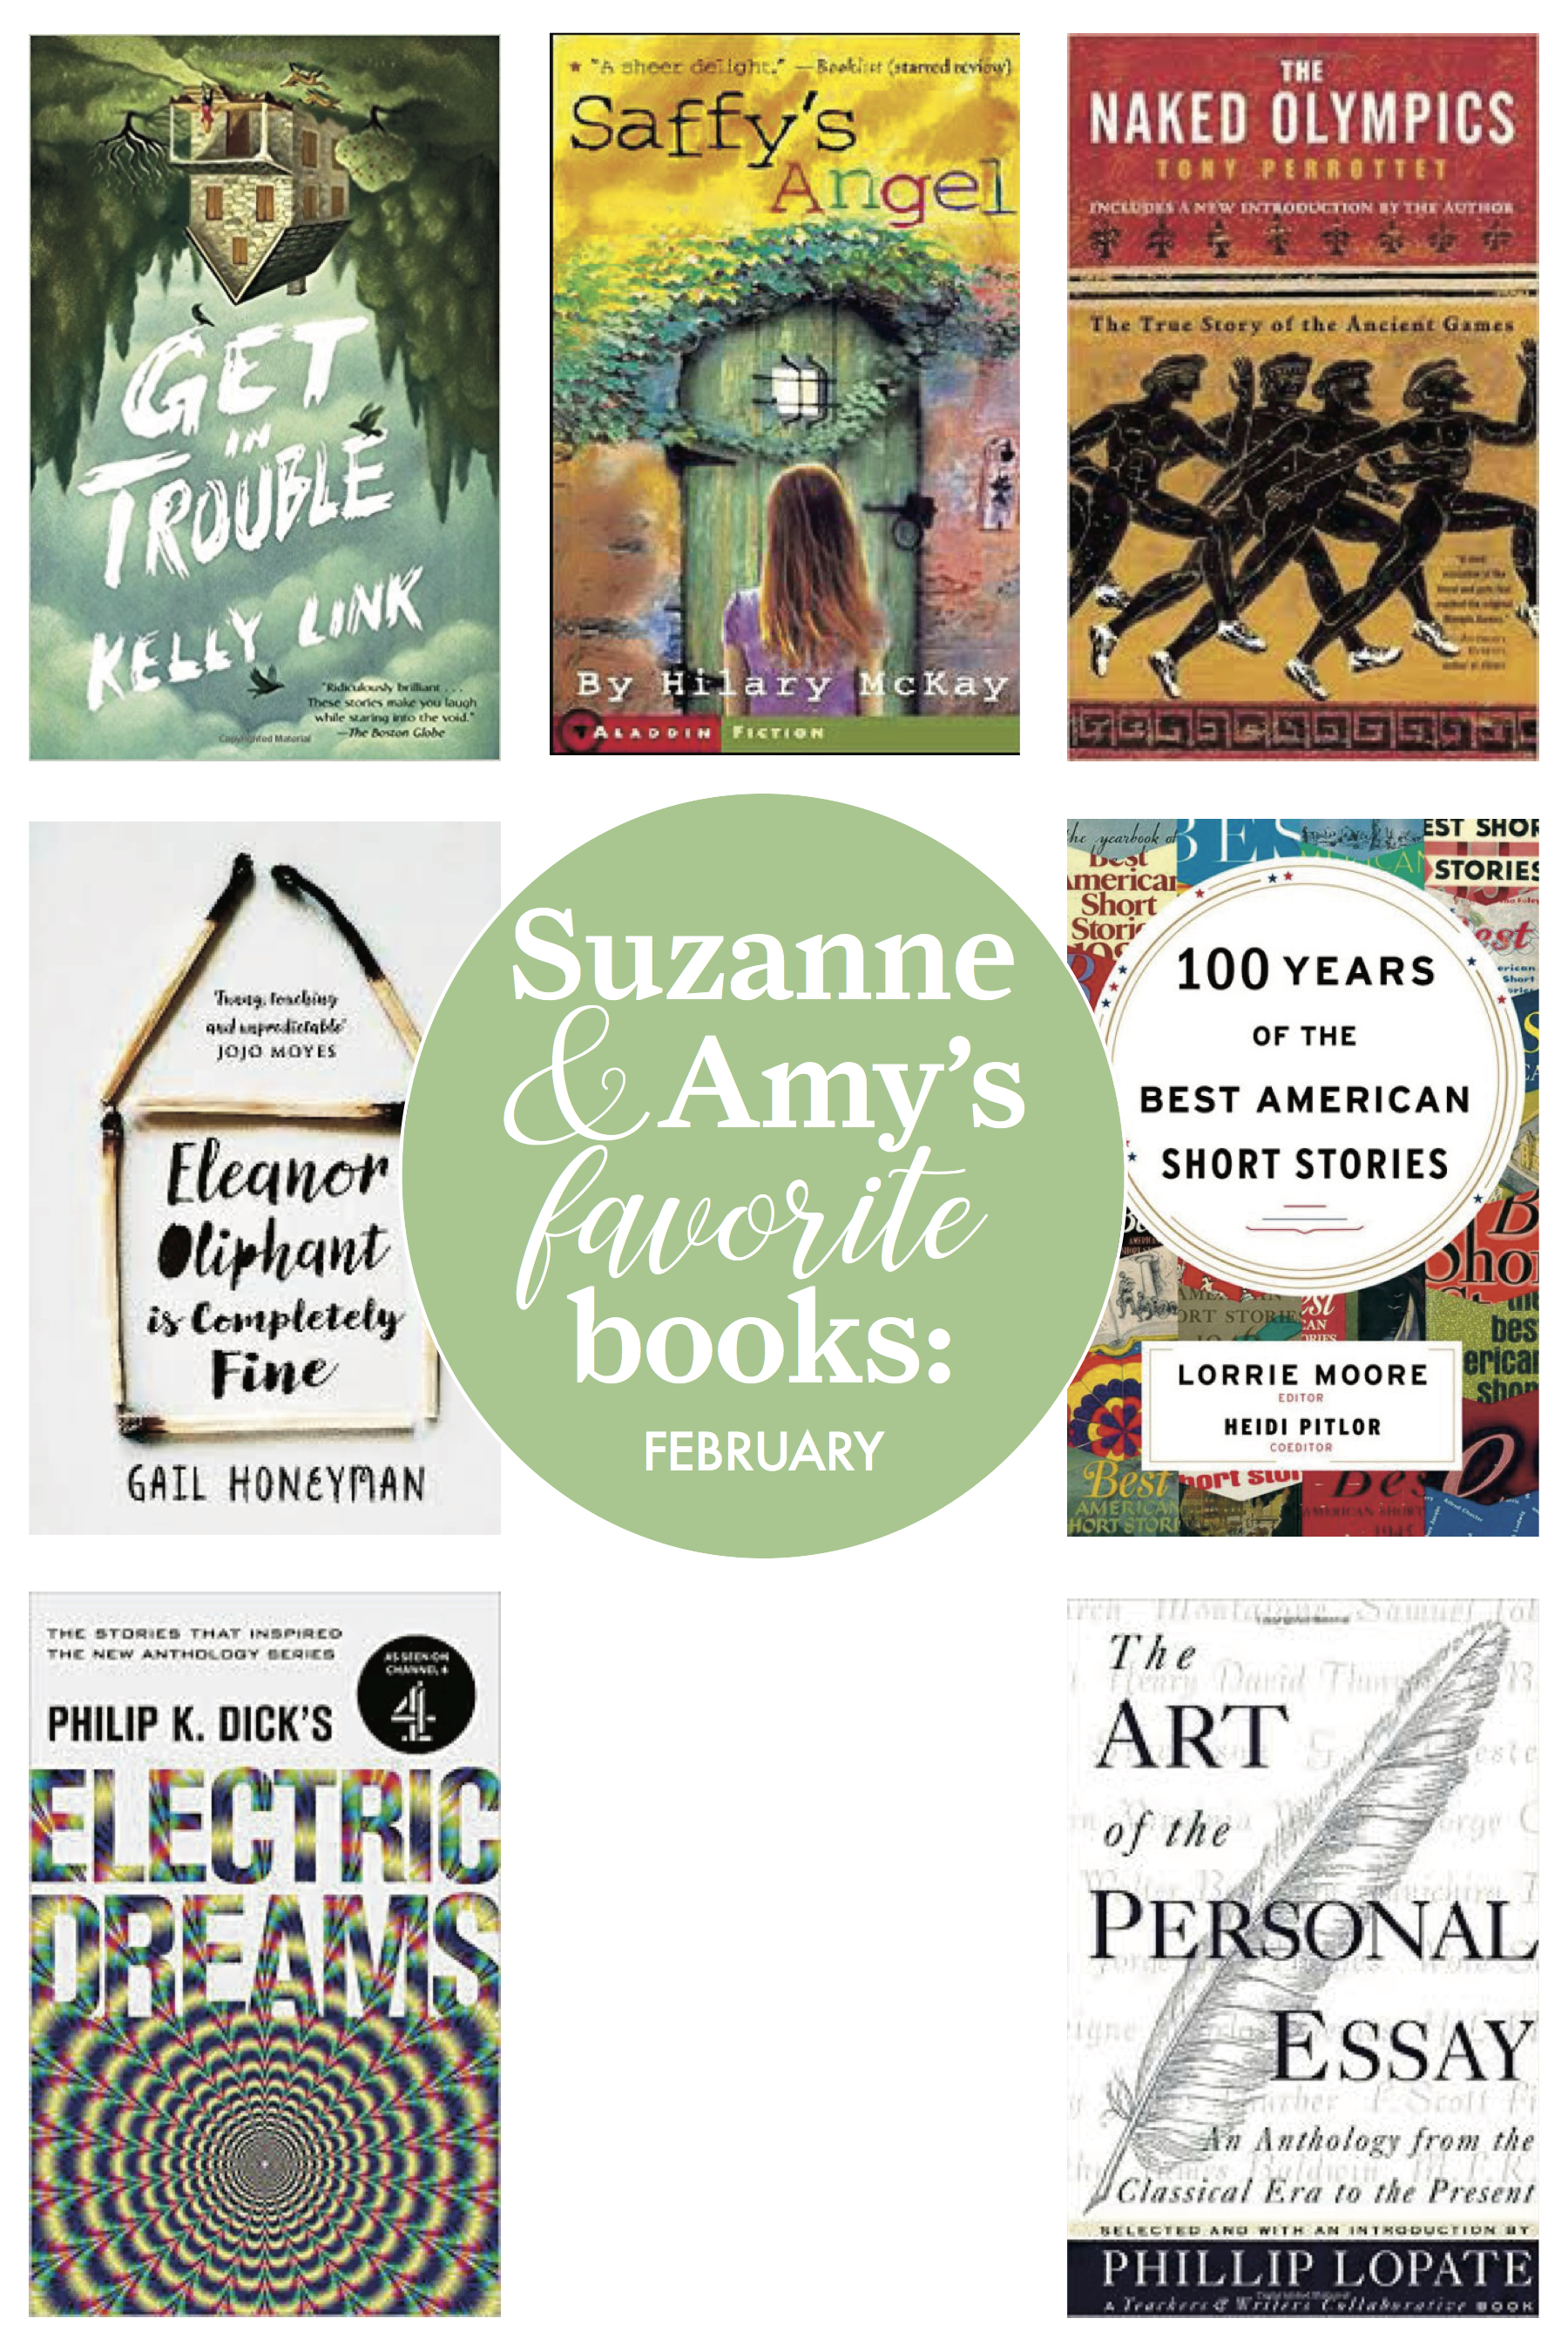 Library Chicken :: Suzanne and Amy's Favorite Reads in February